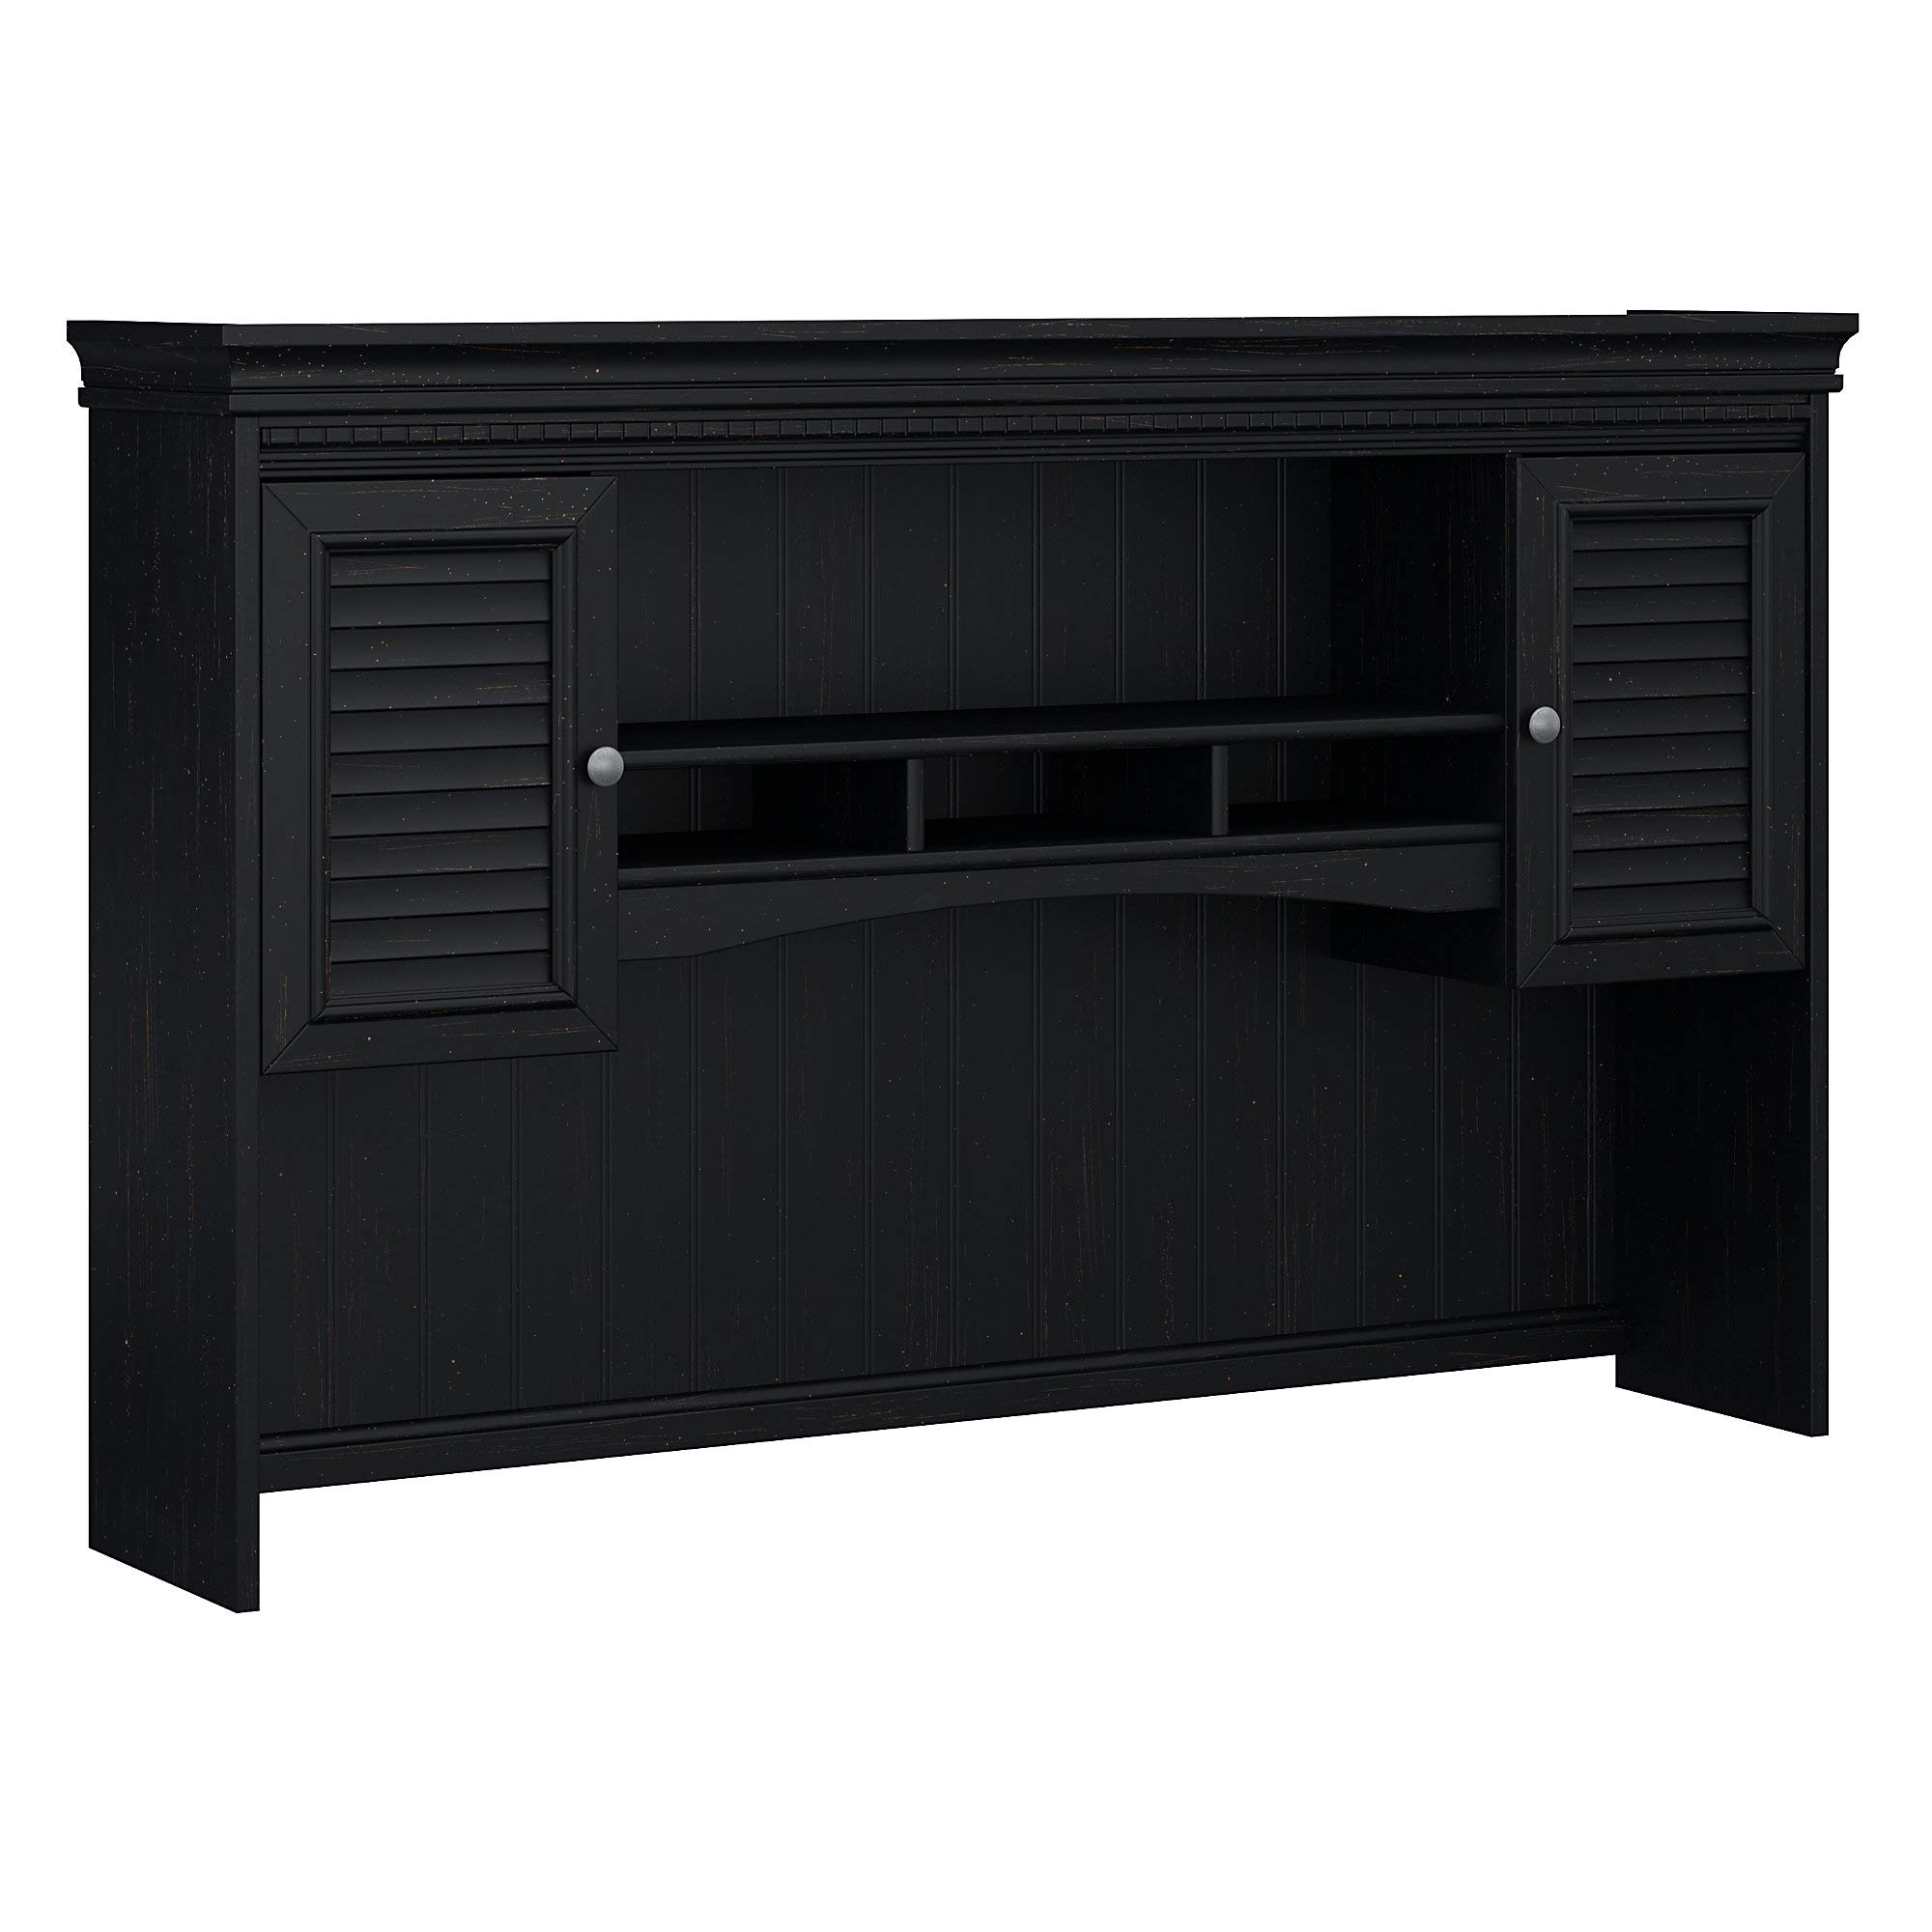 Bush Furniture Fairview Hutch for L Shaped Desk in Antique Black by Bush Furniture